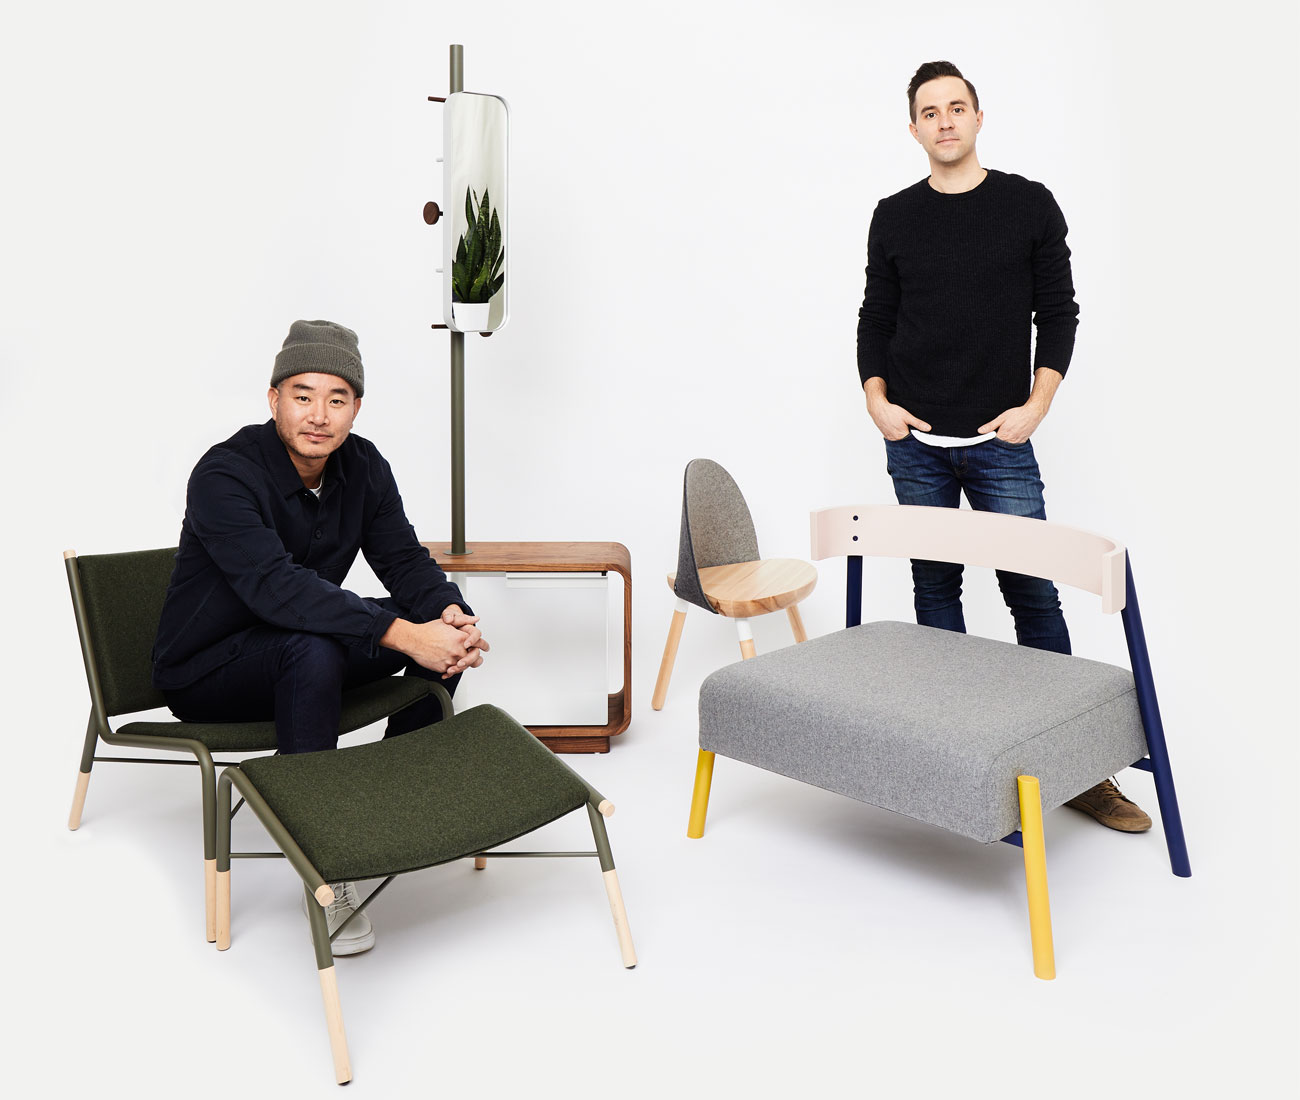 COFO'S Desmond Chan and Randy Simmen with the 49N lounge chair and ottoman by Kenny Nguyen and Ian Buckley, The Cinch by Lucas Stanois, The Garcia by Mary Anne Garcia, and The Roque by Trish Roque.